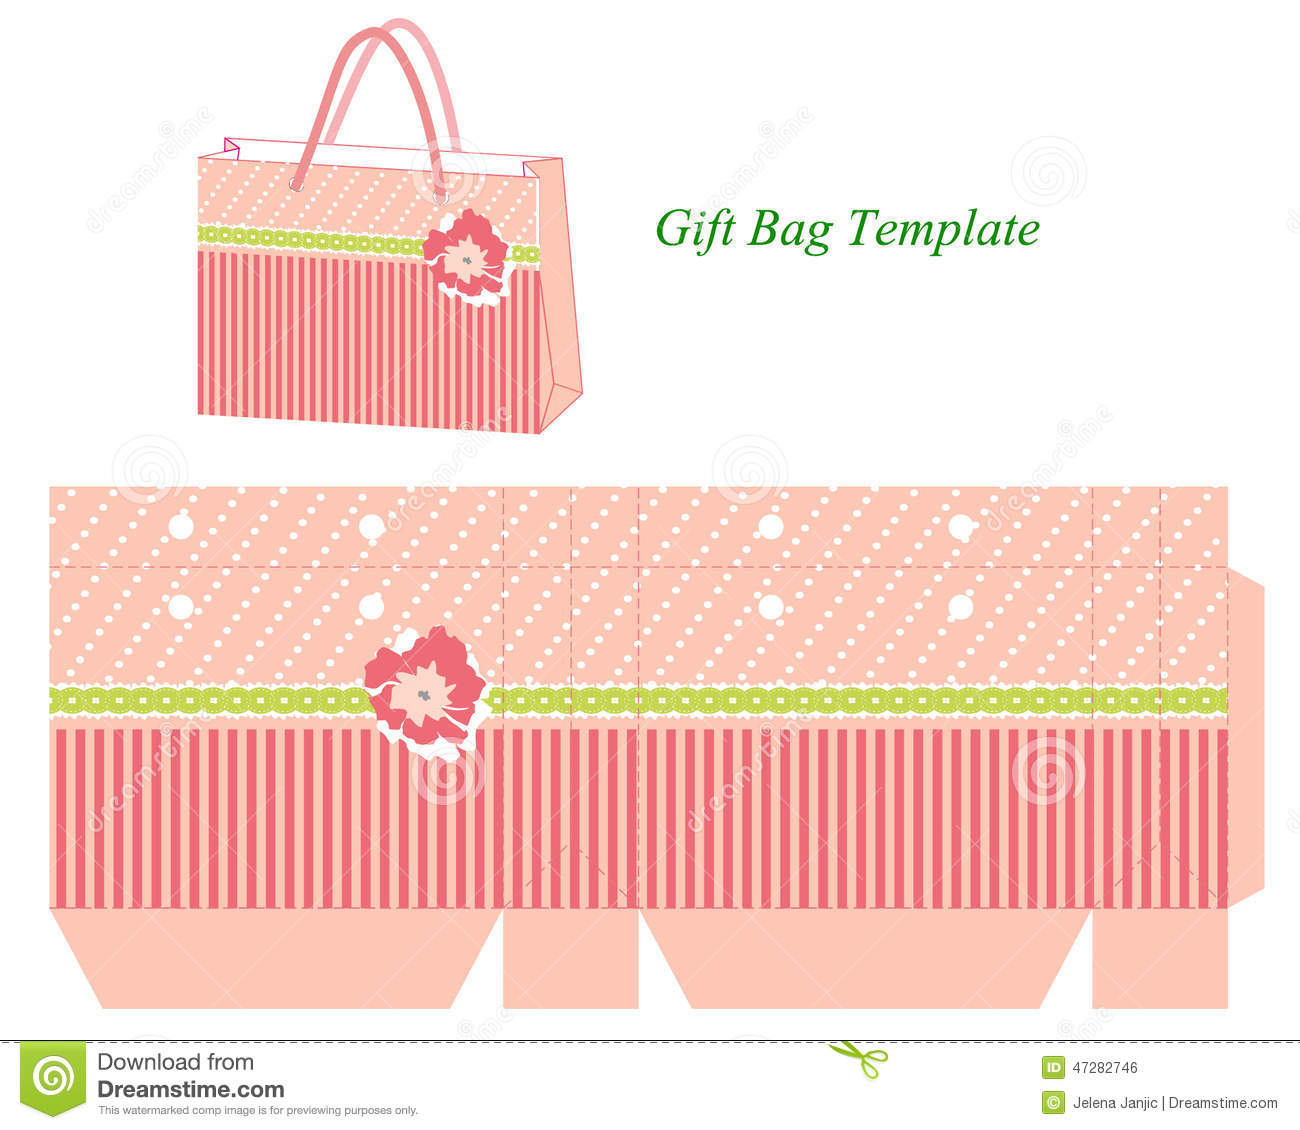 photo about Printable Gift Bags titled Reward Bag Template With Stripes And Flower Inventory Vector